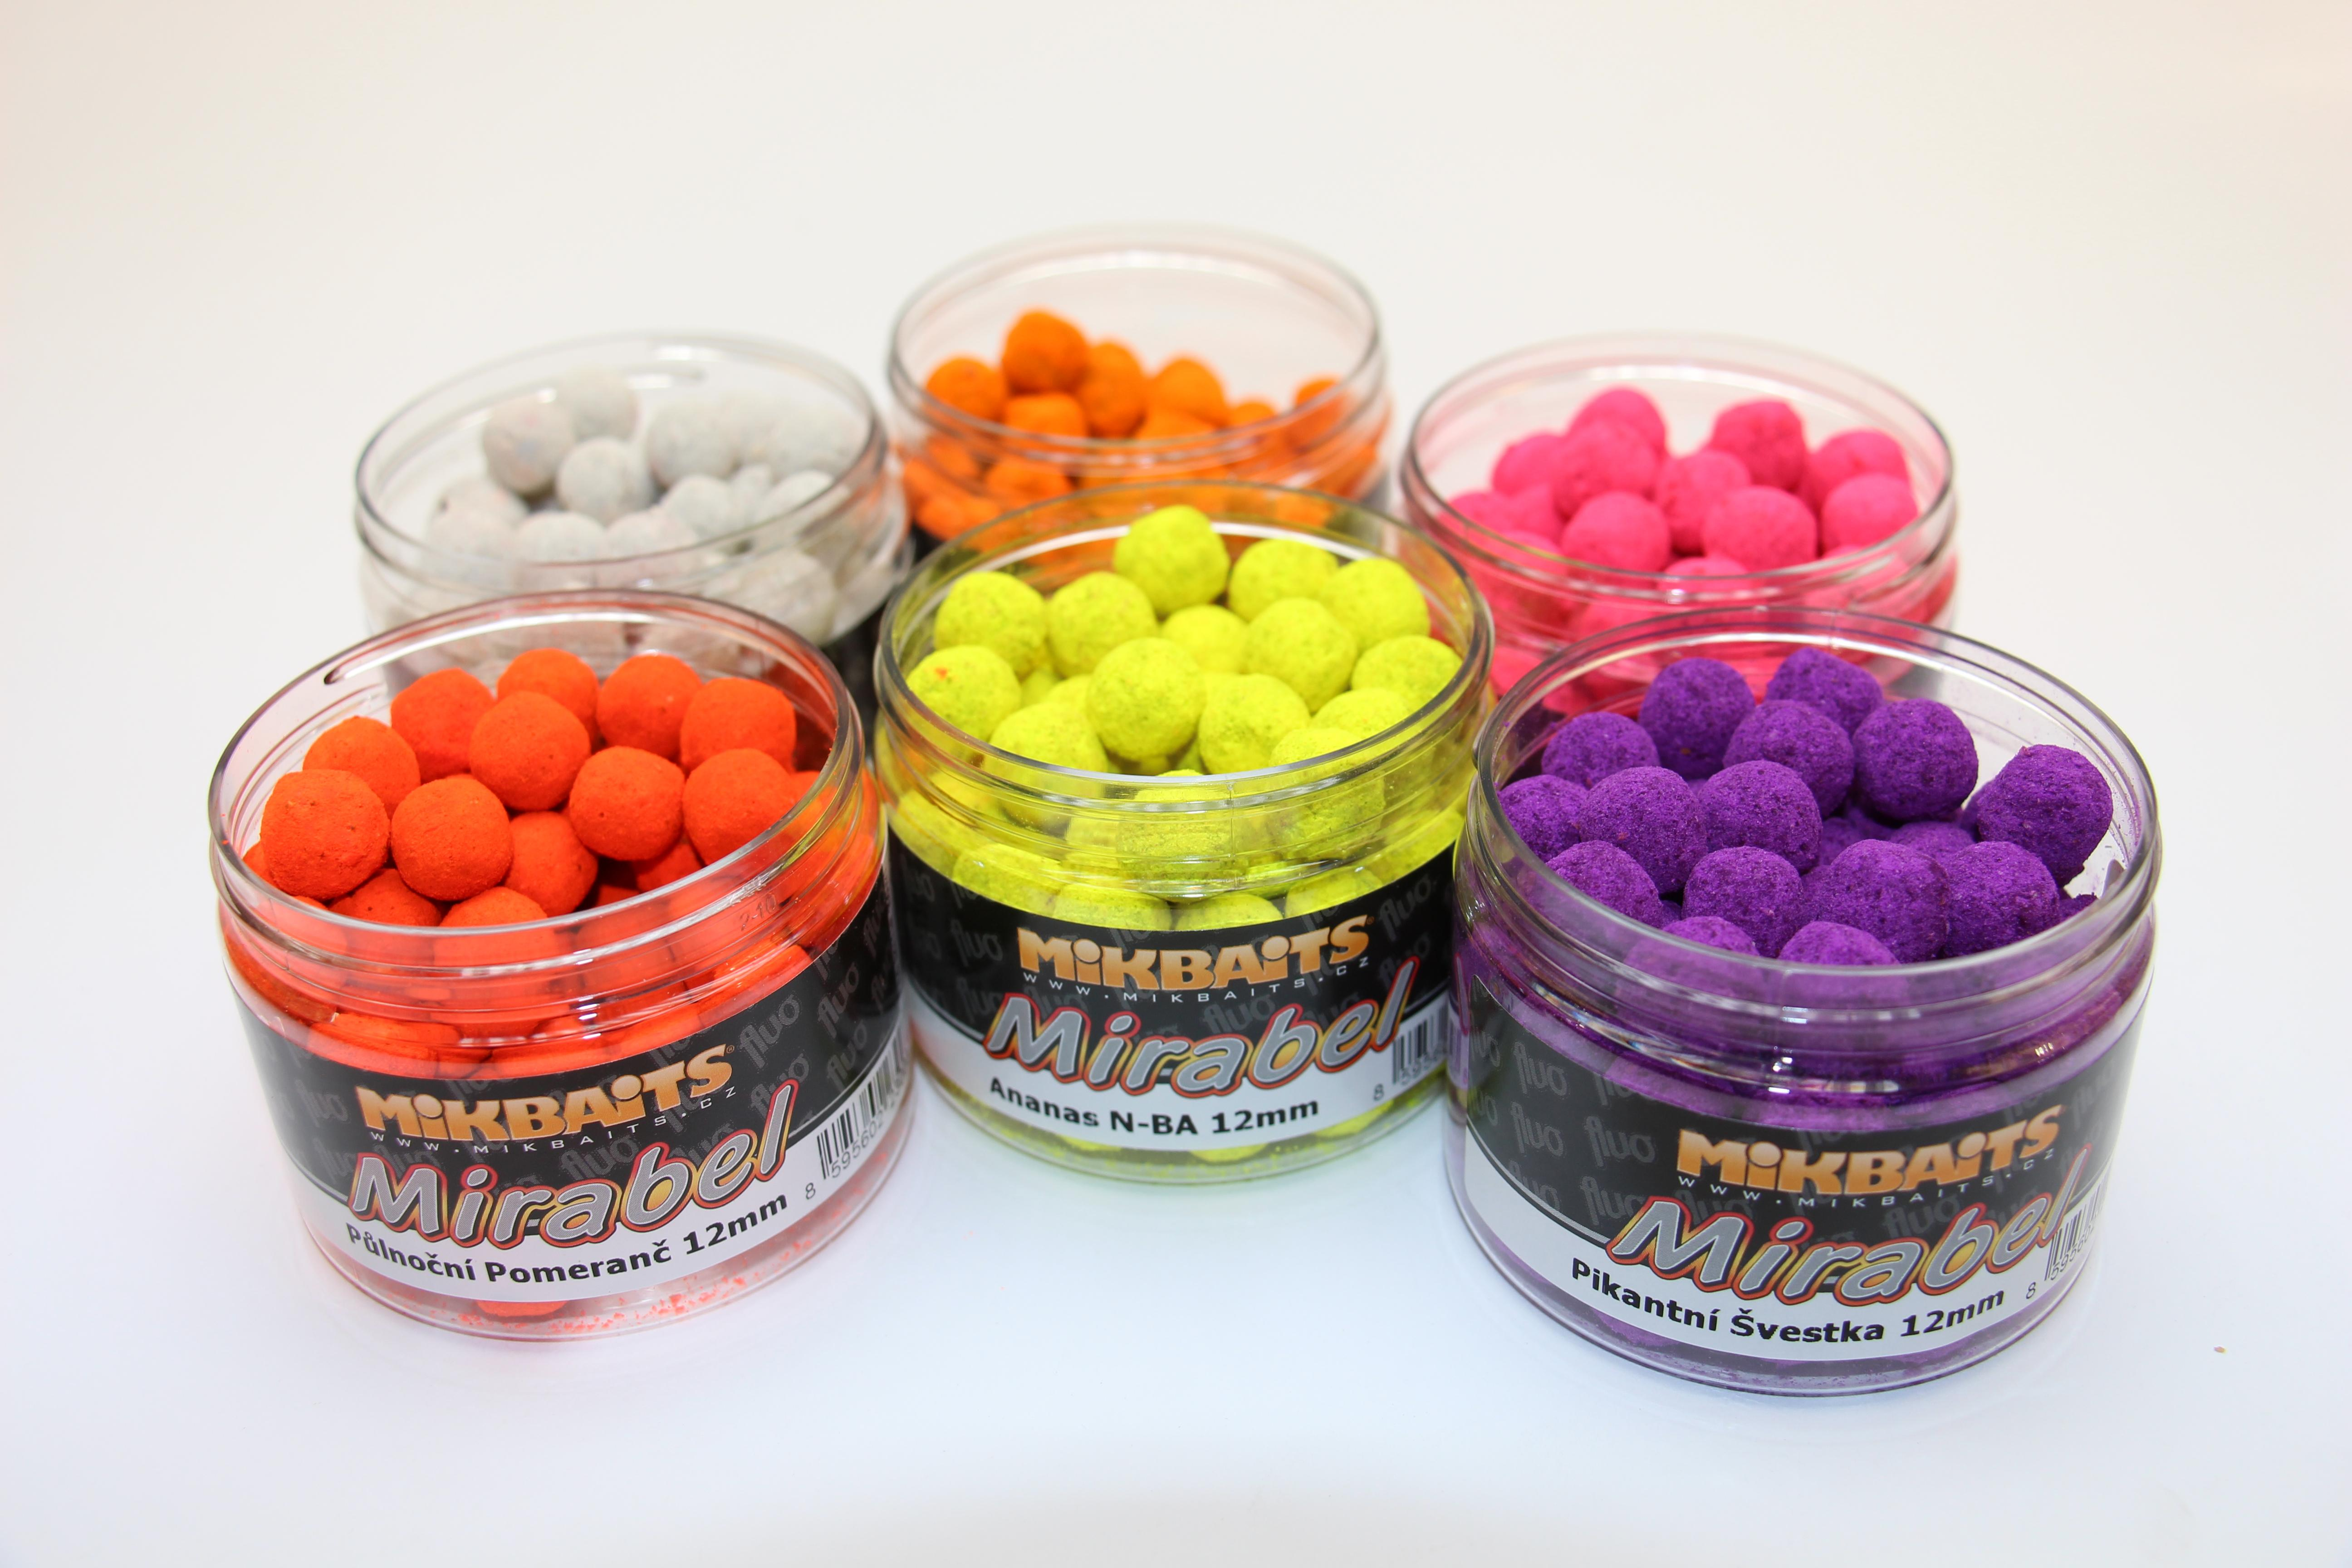 Boilie Mikbaits Mirabel fluo 150 ml 12 mm